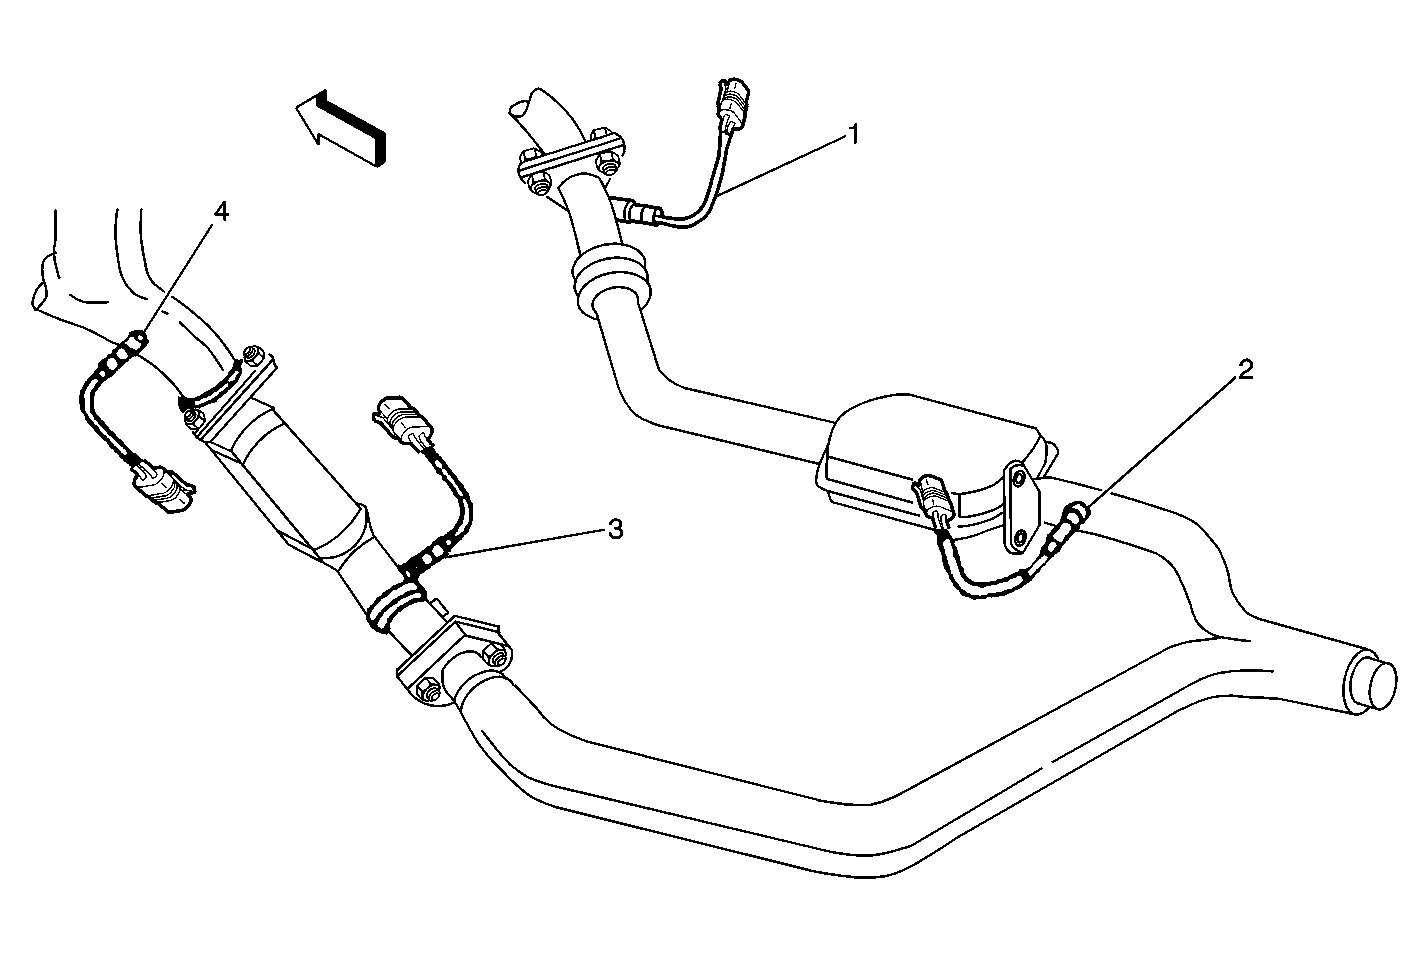 Immobilizer Location On 2000 328ci further 2000 Land Cruiser Exhaust System furthermore PreviaMaintenance BasicReferences also Camry Engine Parts Diagram further Toyota Corolla Parts Diagram. on 2004 toyota sienna exhaust system diagram